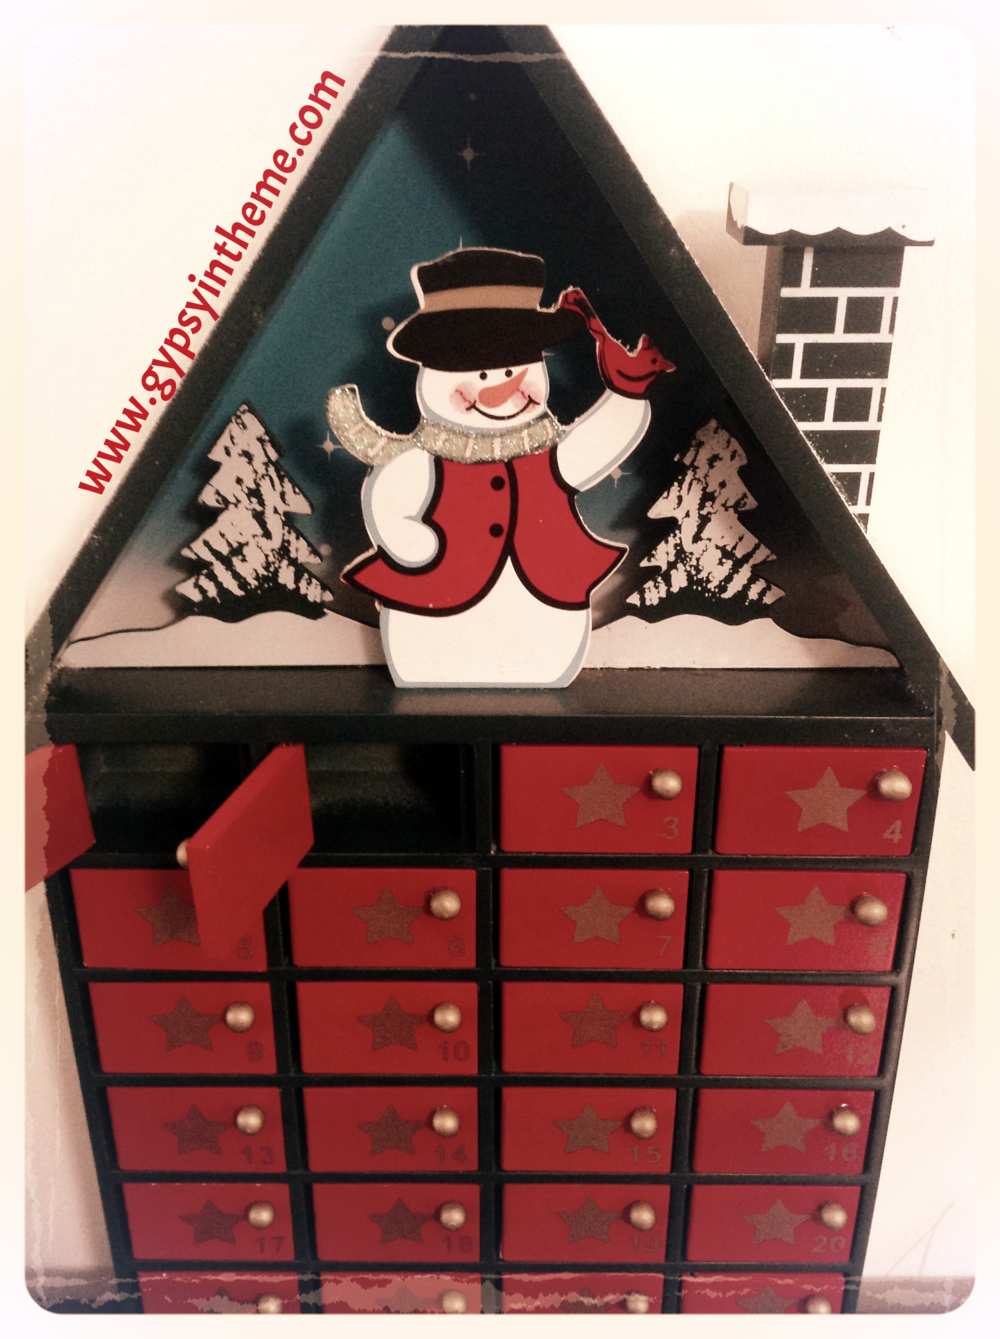 First Christmas decoration I purchased in Qatar (2007) - A wooden advent calendar from Carrefour.  We take it out each year on December 1 to kick off the Holiday Season.   This year, each door hides either a mini Mars bar, mini TicTac box, Double Bubble gum, or mini Smarties box.